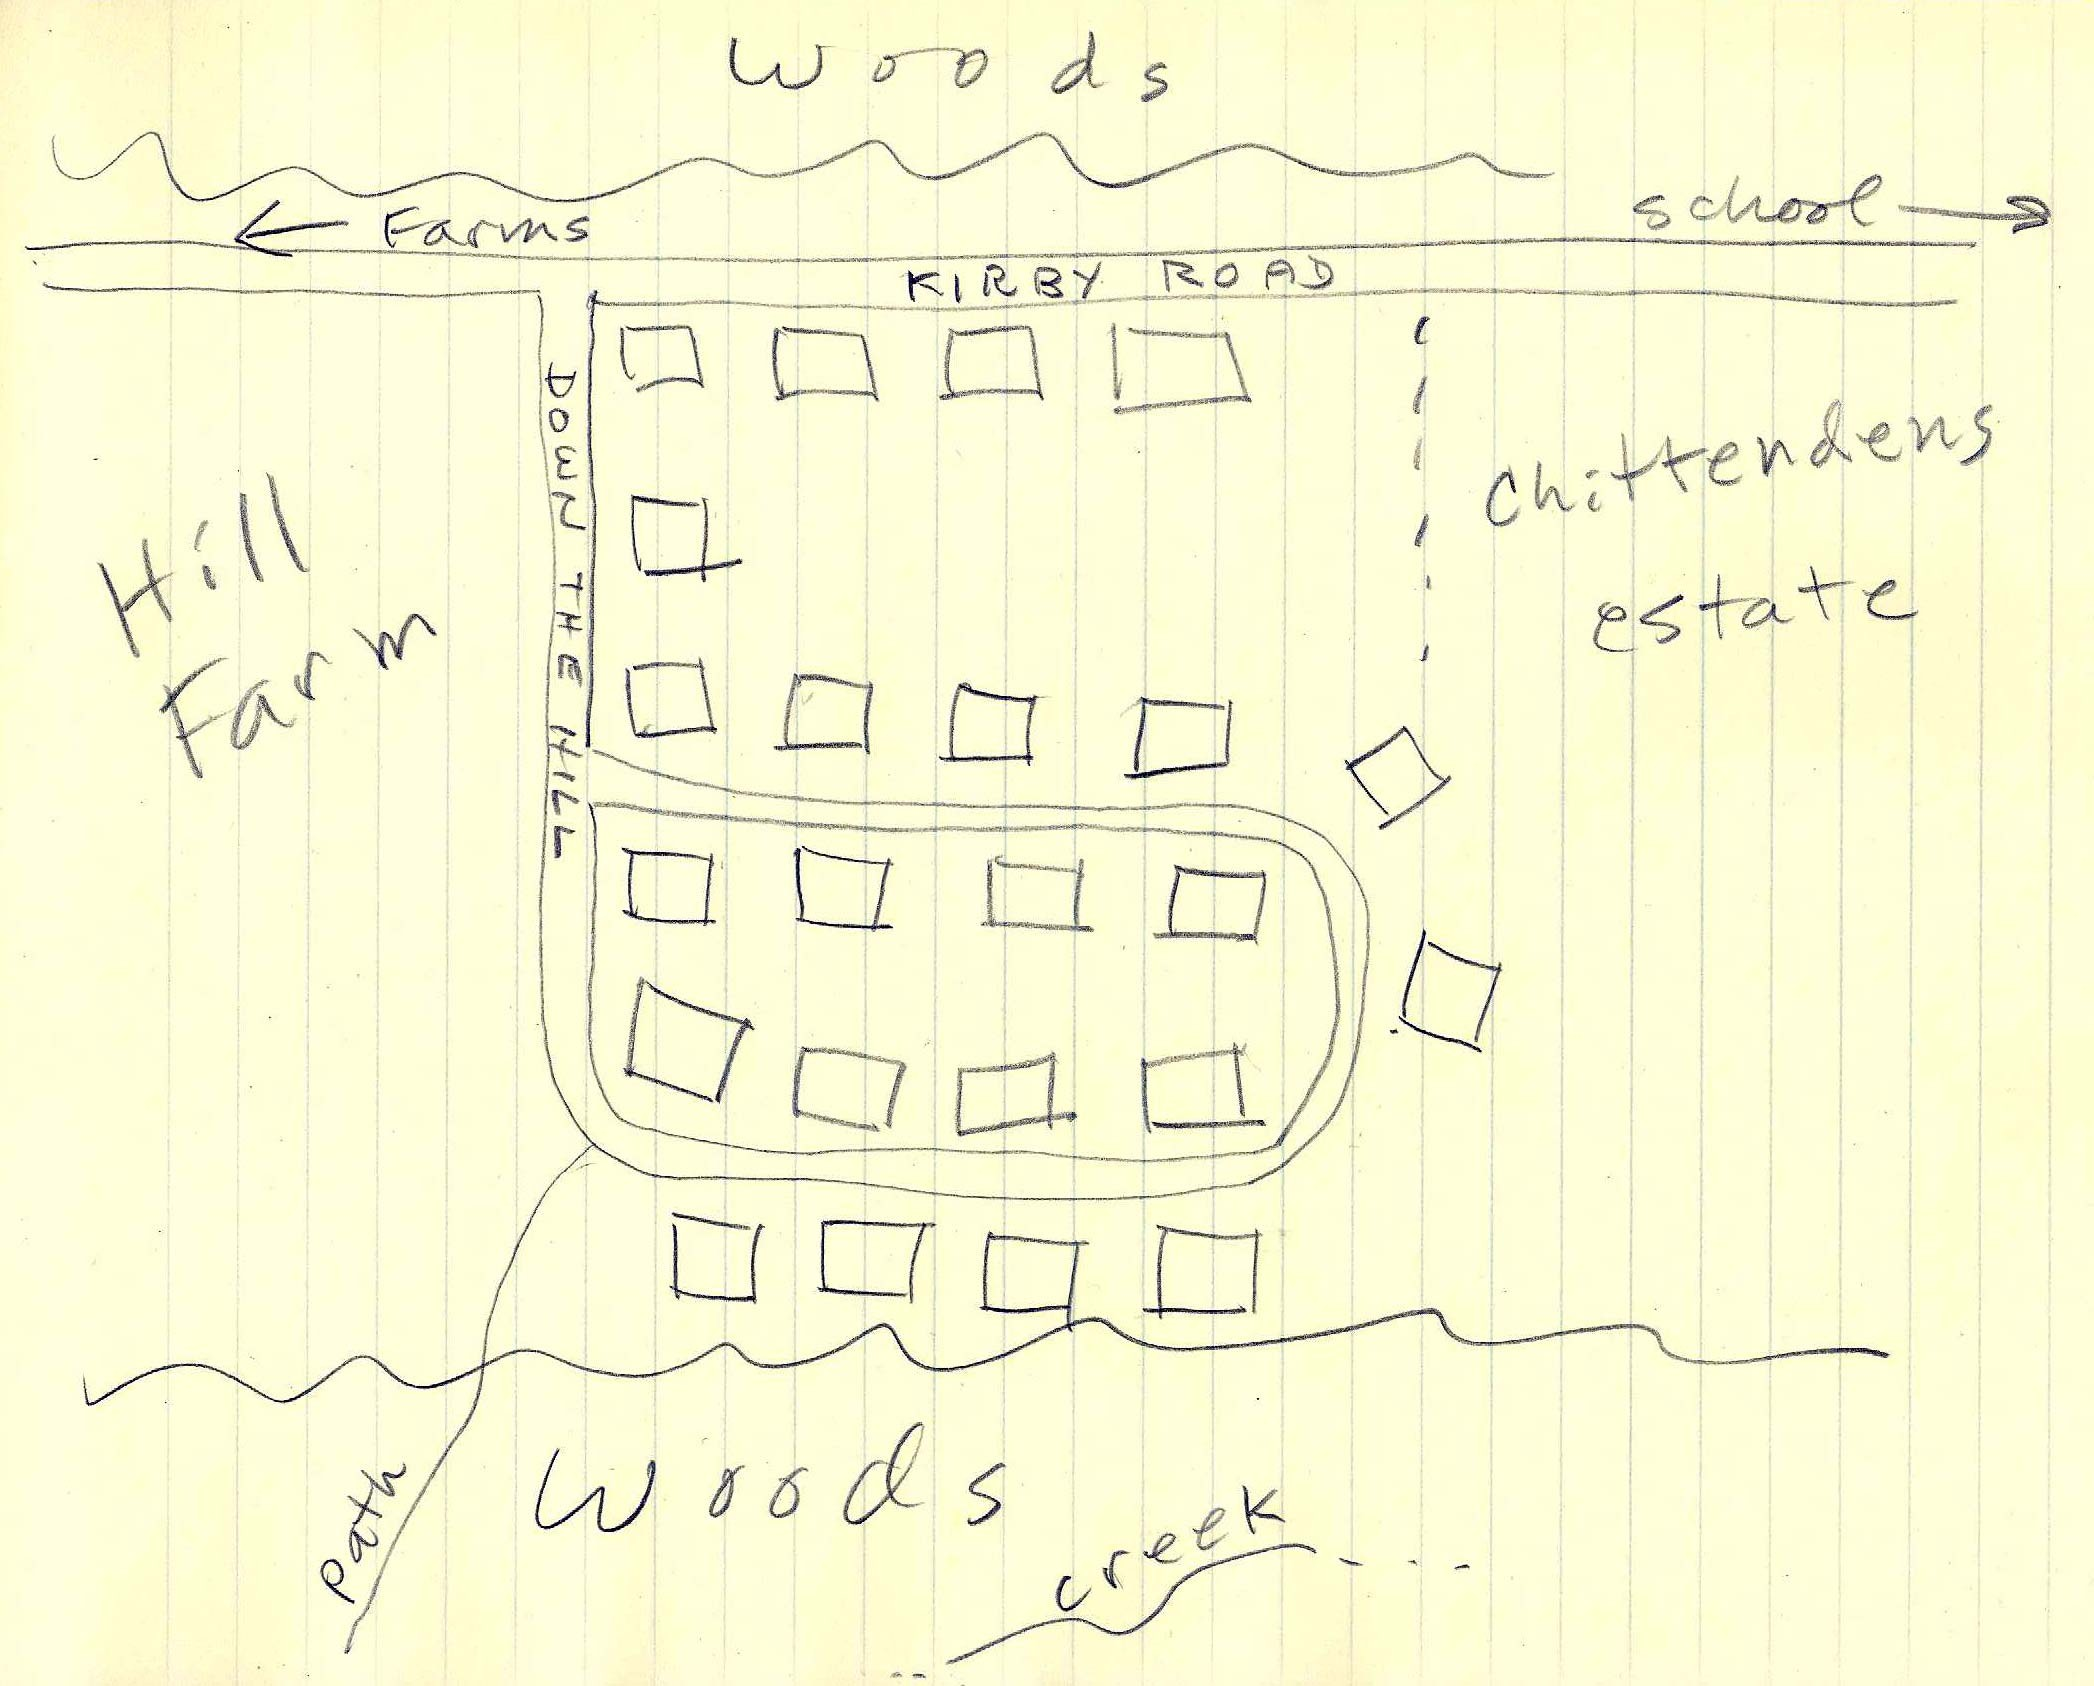 Wiring Diagram for Snorkel S1930 Jlo6251 Family History Da Cruz Scott Of Wiring Diagram for Snorkel S1930 Jlo6251